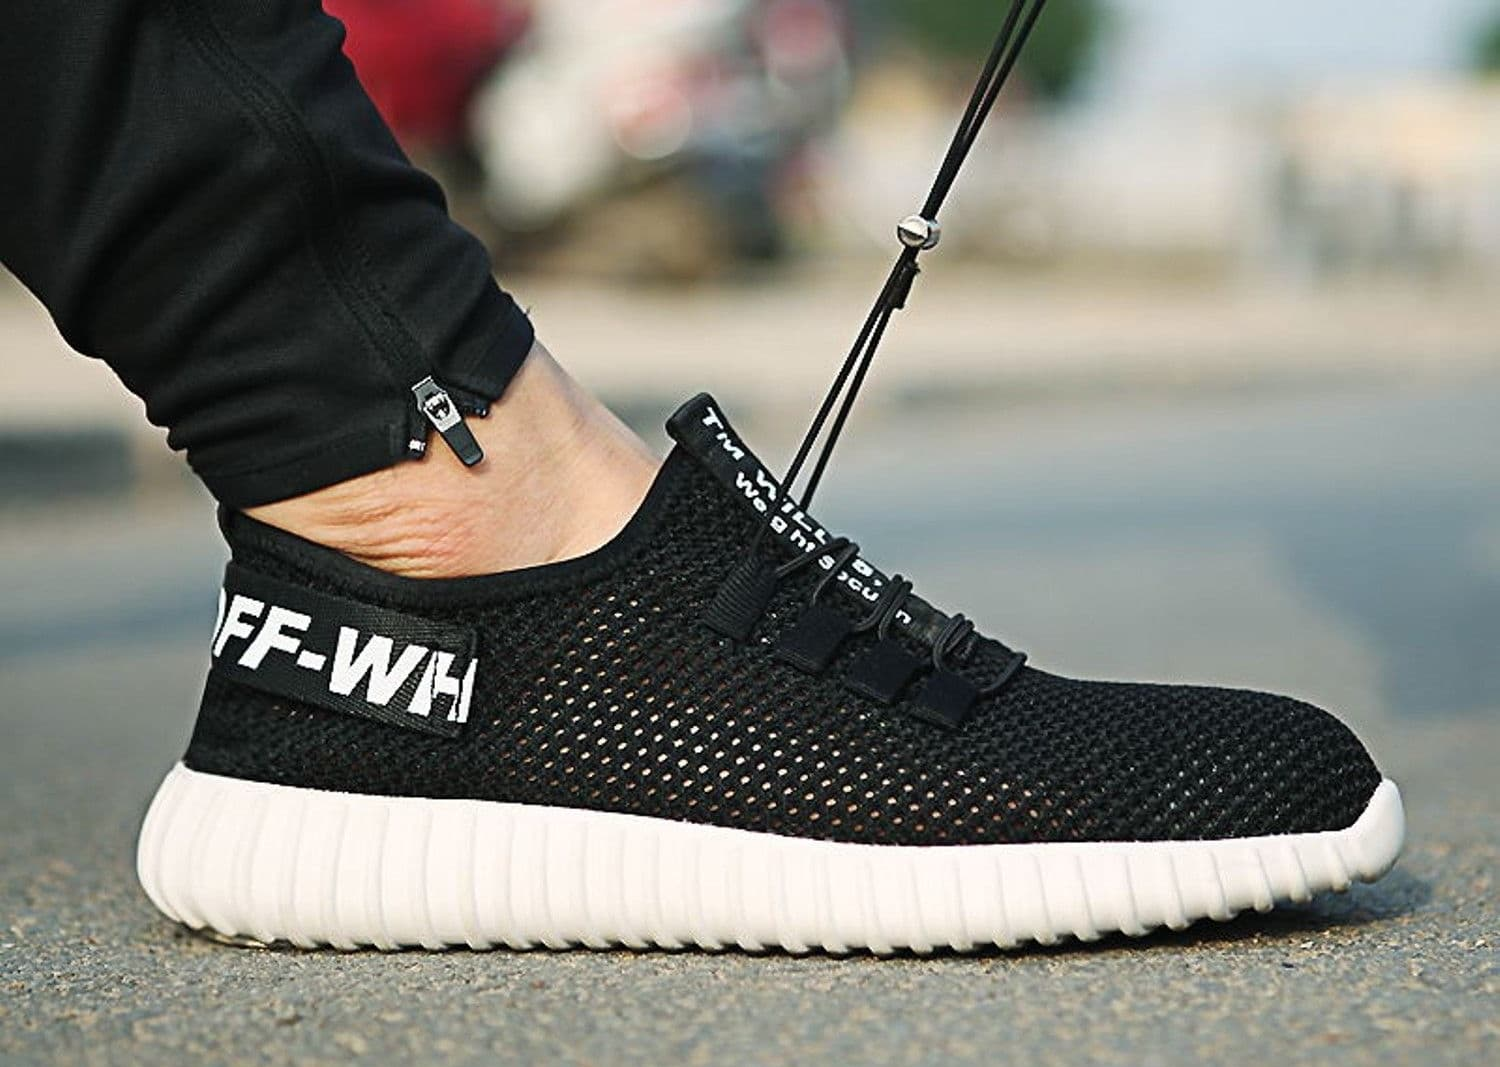 656a724a39 These Fake Off-White x Yeezys Are 'Indestructible' | Sole Collector